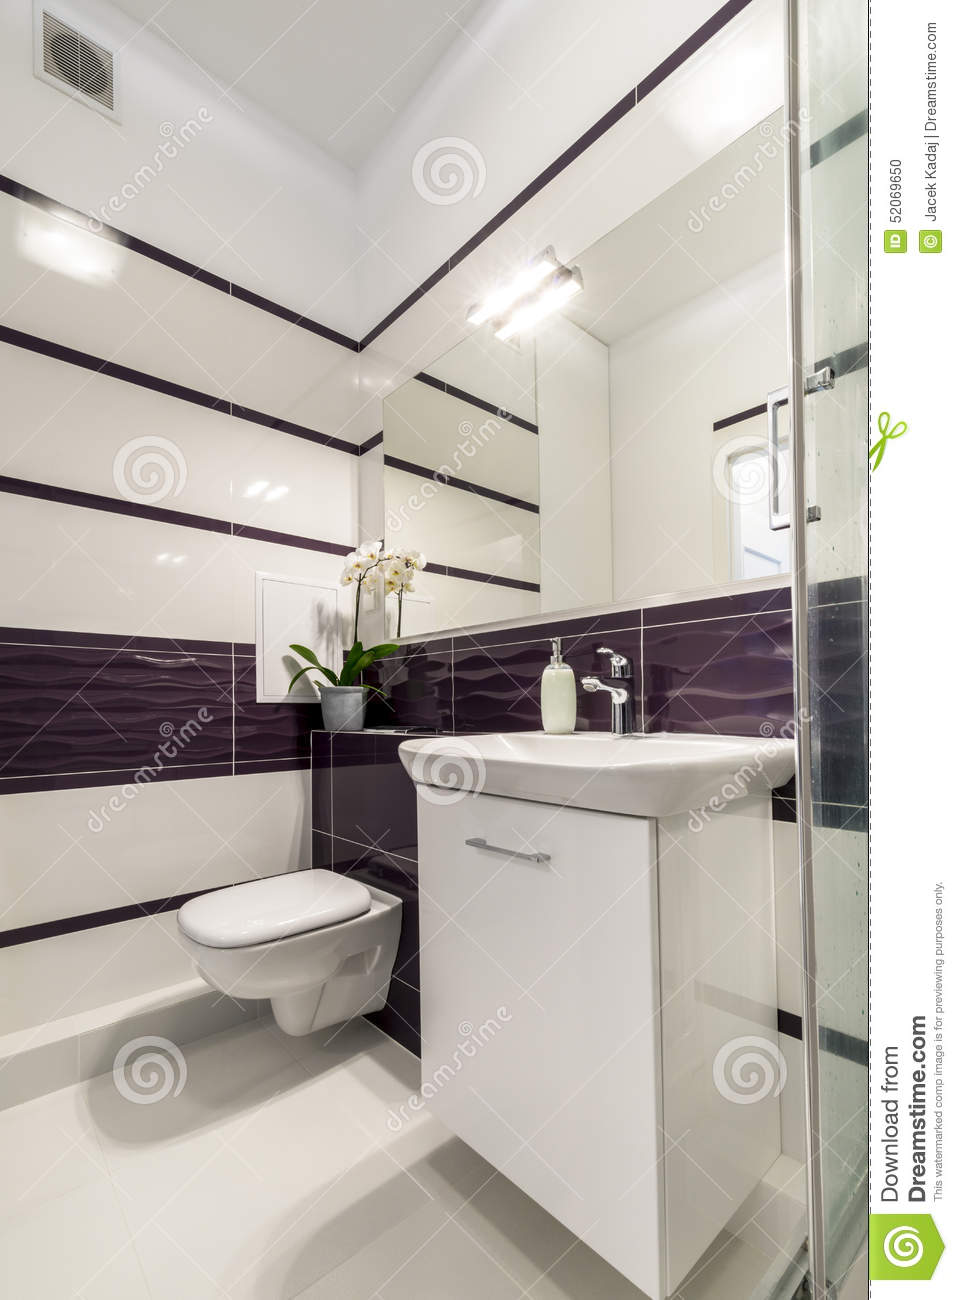 salle de bains moderne dans le style blanc et violet photo. Black Bedroom Furniture Sets. Home Design Ideas